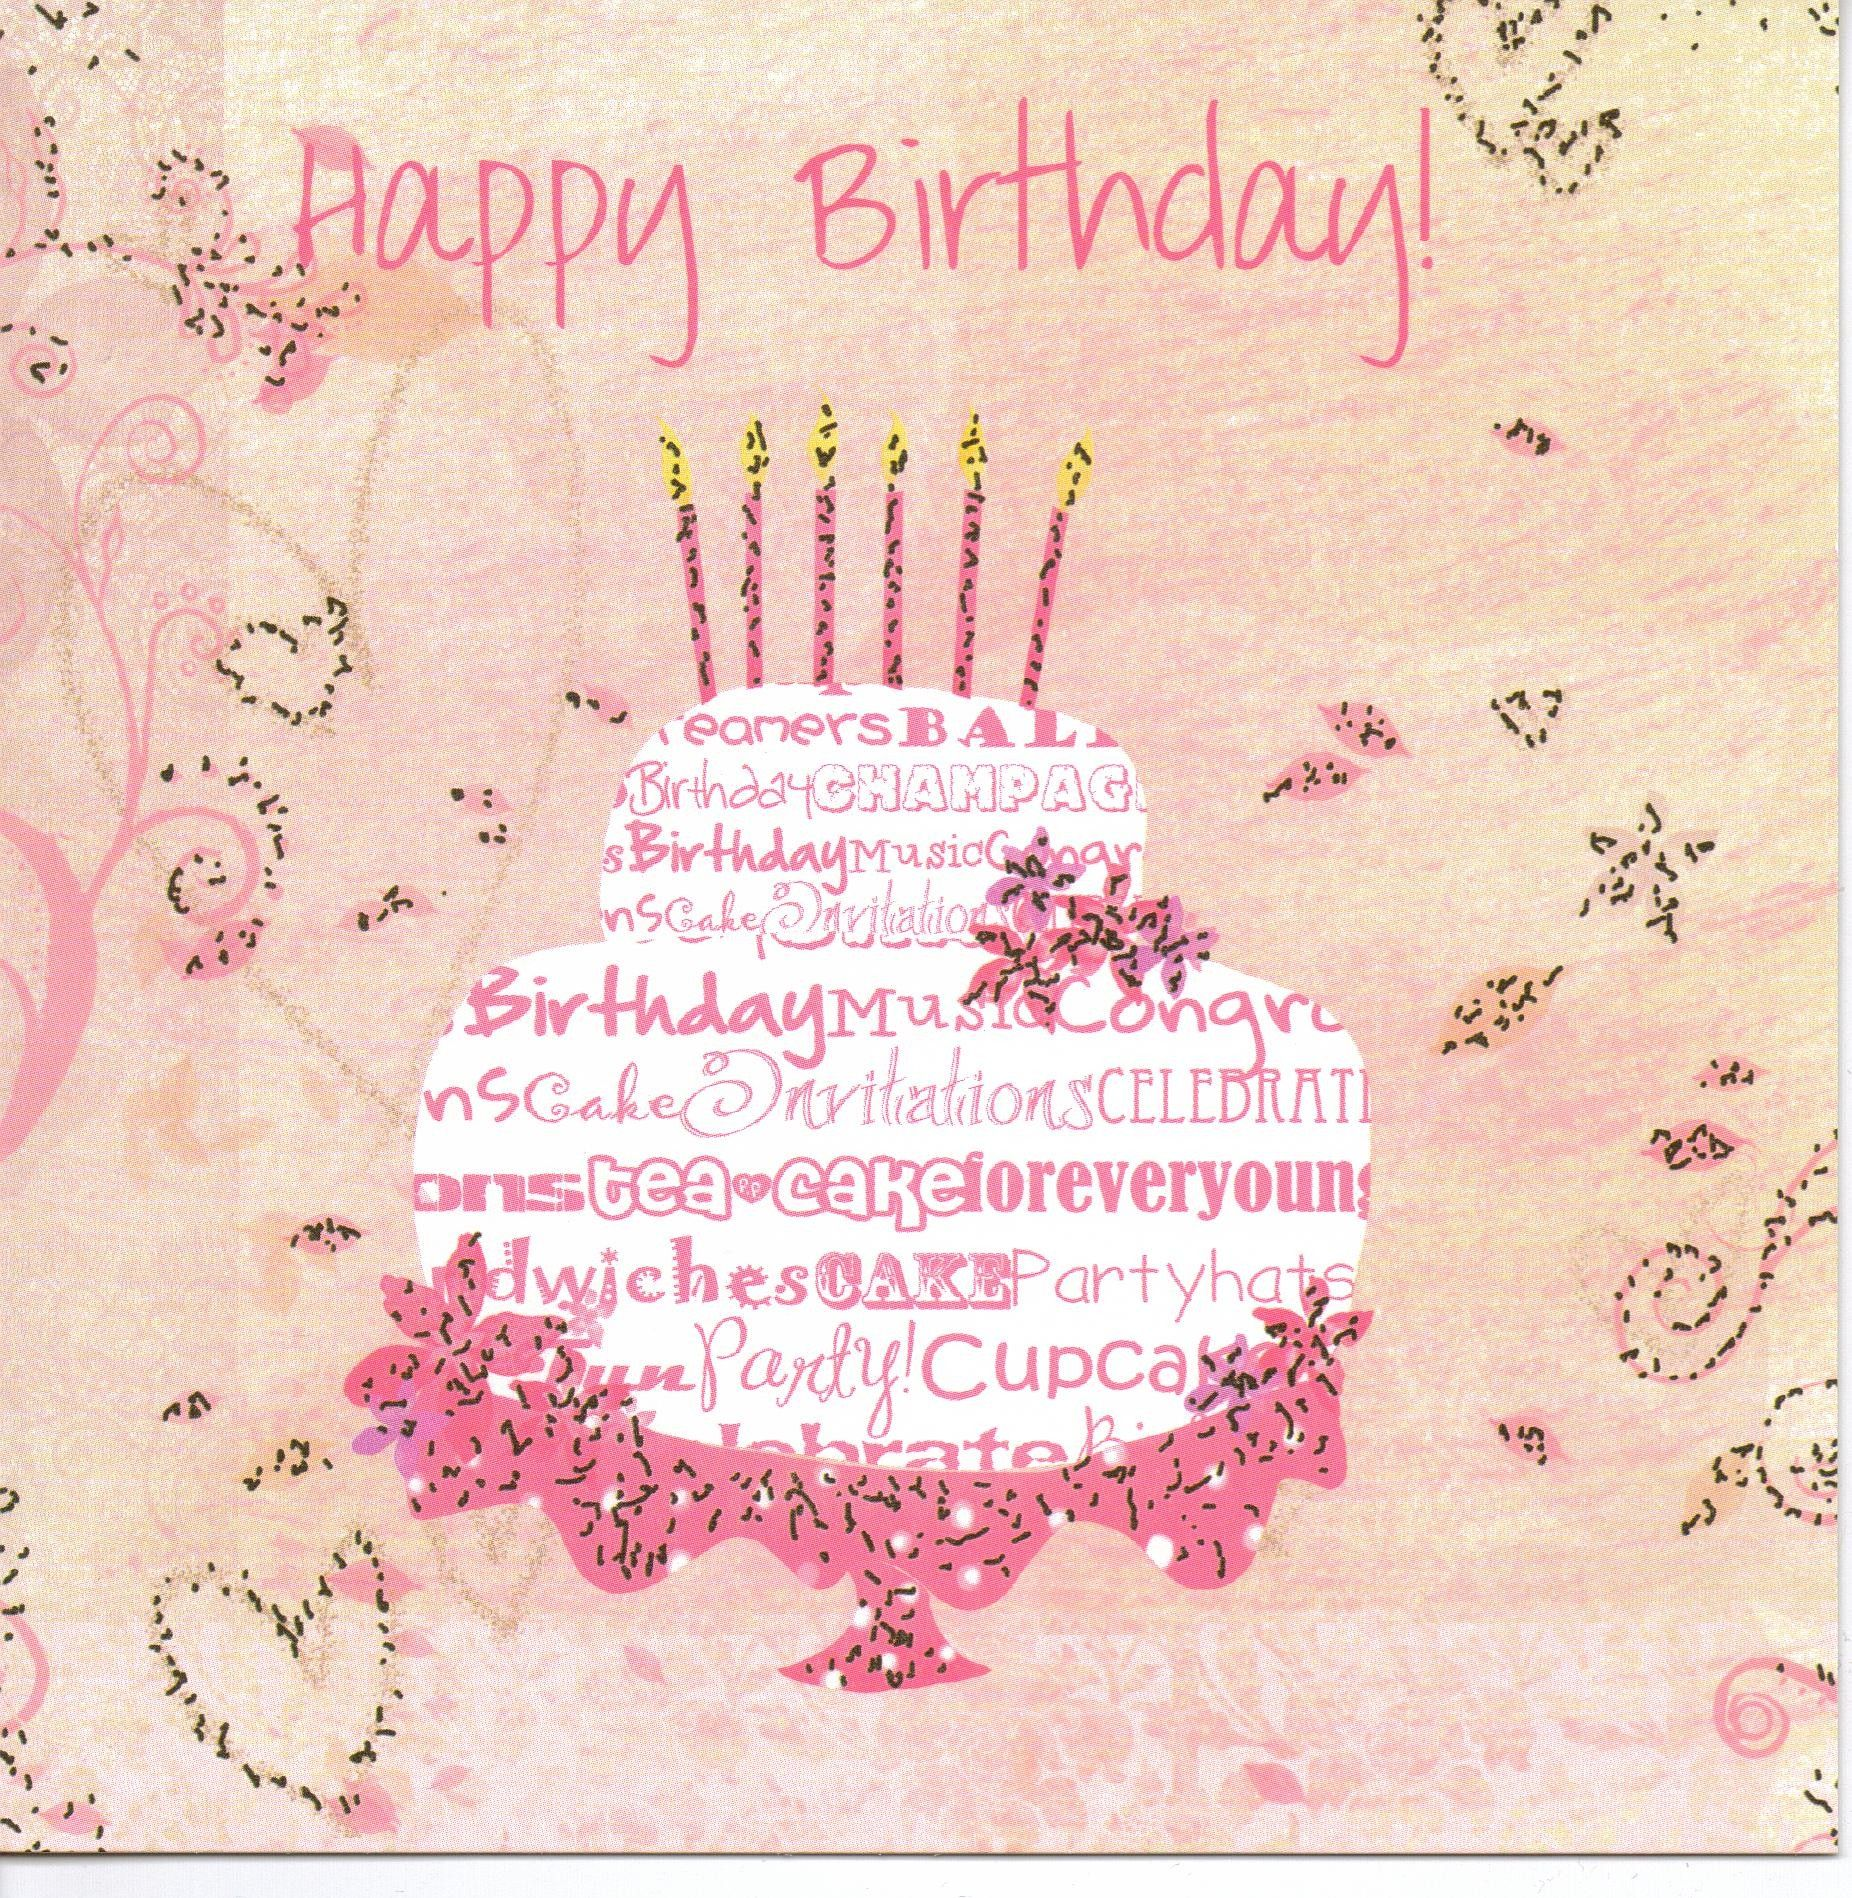 Happy Birthday Wish Chocolate Greetings Cards Online – Happy Birthdays Cards